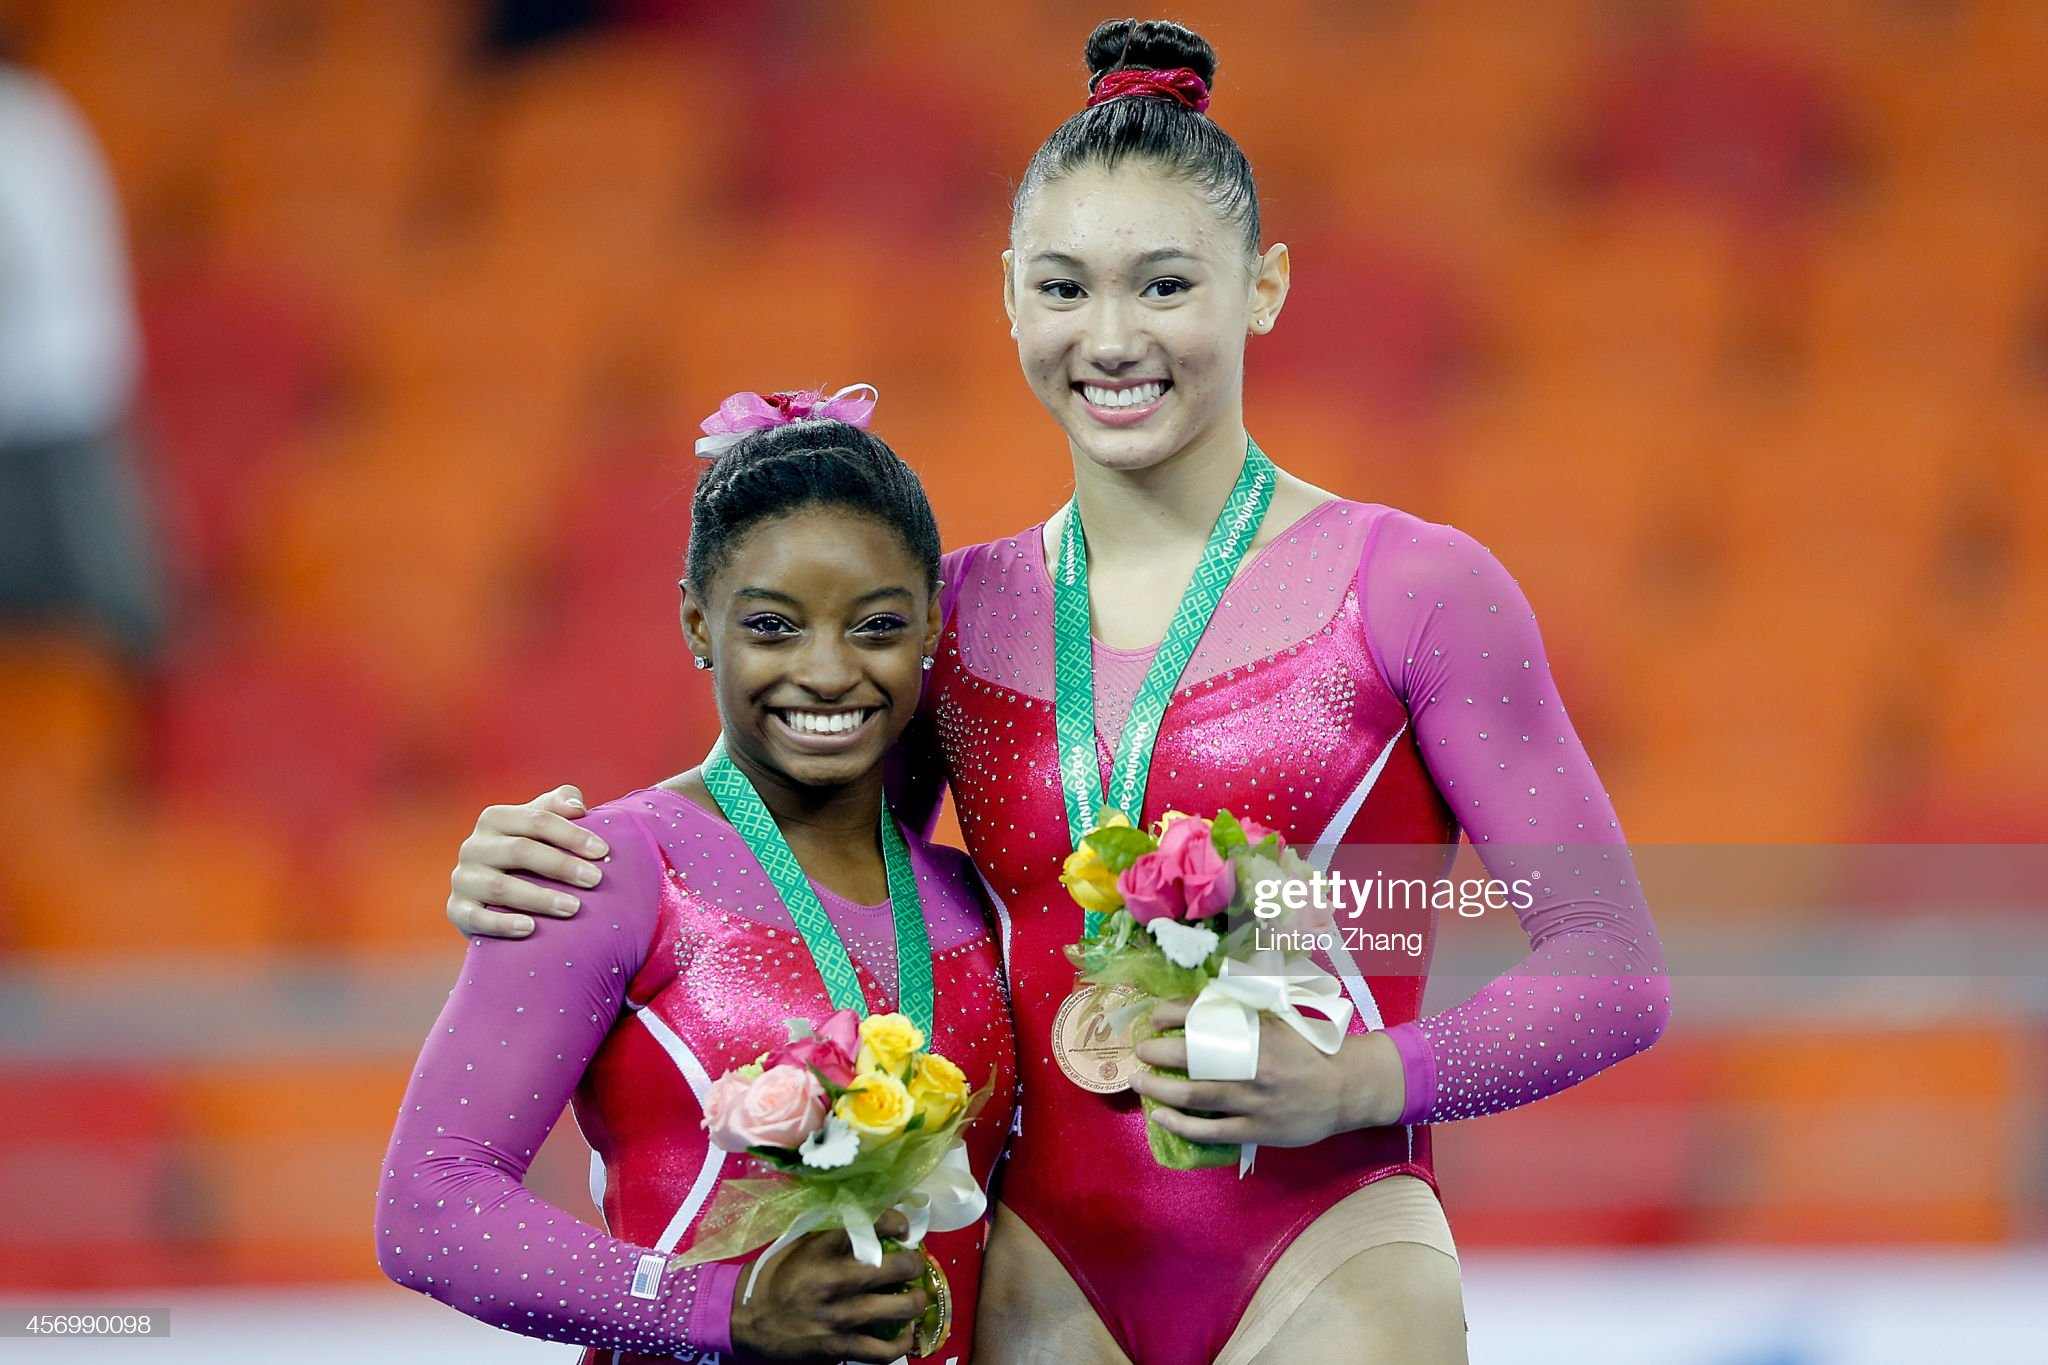 ¿Cuánto mide Kyla Ross? - Real height Gold-medalist-simone-biles-and-bronze-medalist-kyla-ross-of-united-picture-id456990098?s=2048x2048